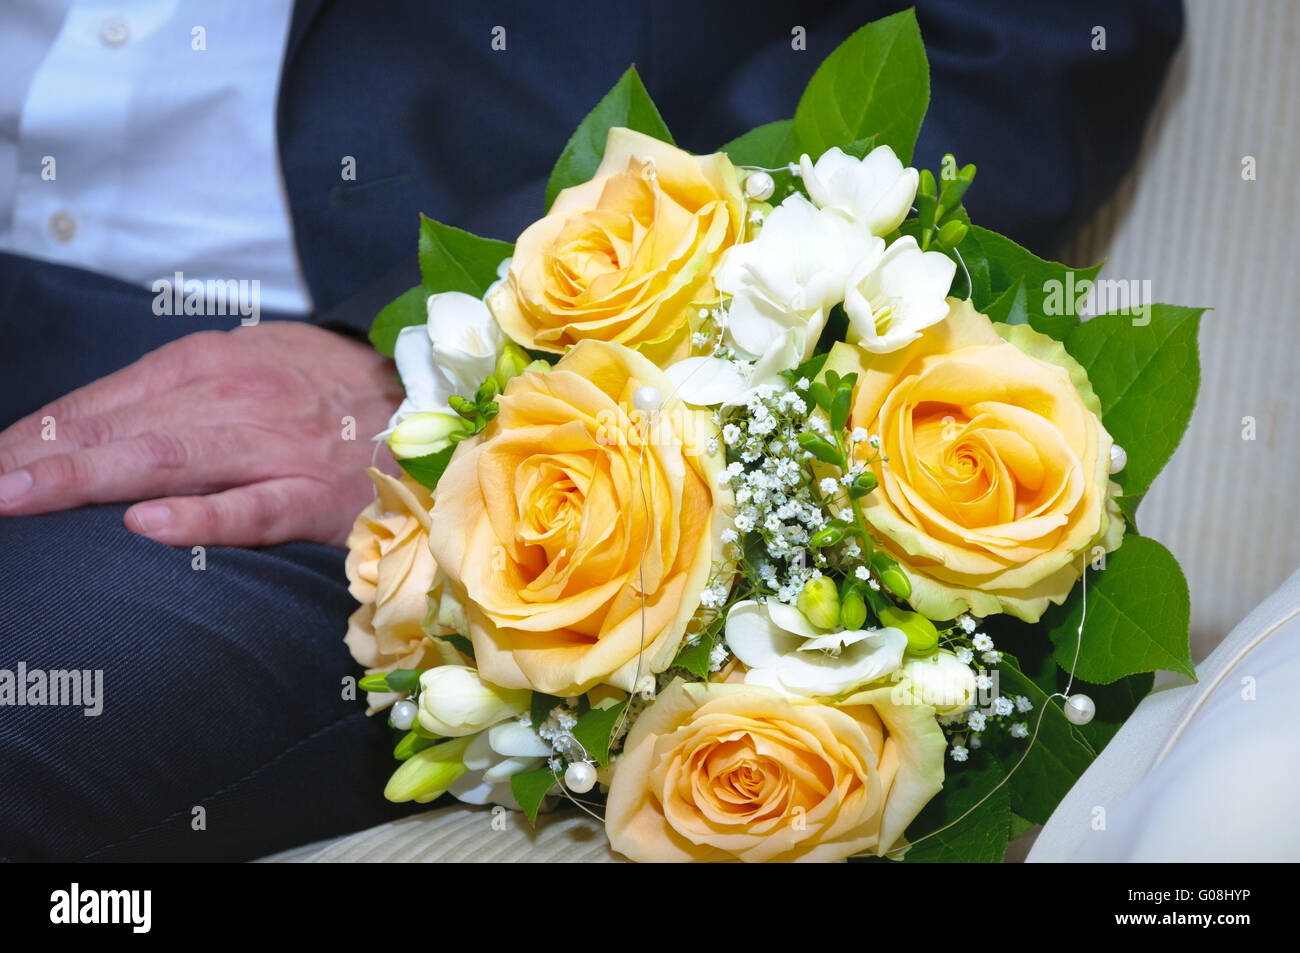 Bridal bouquet - Stock Image